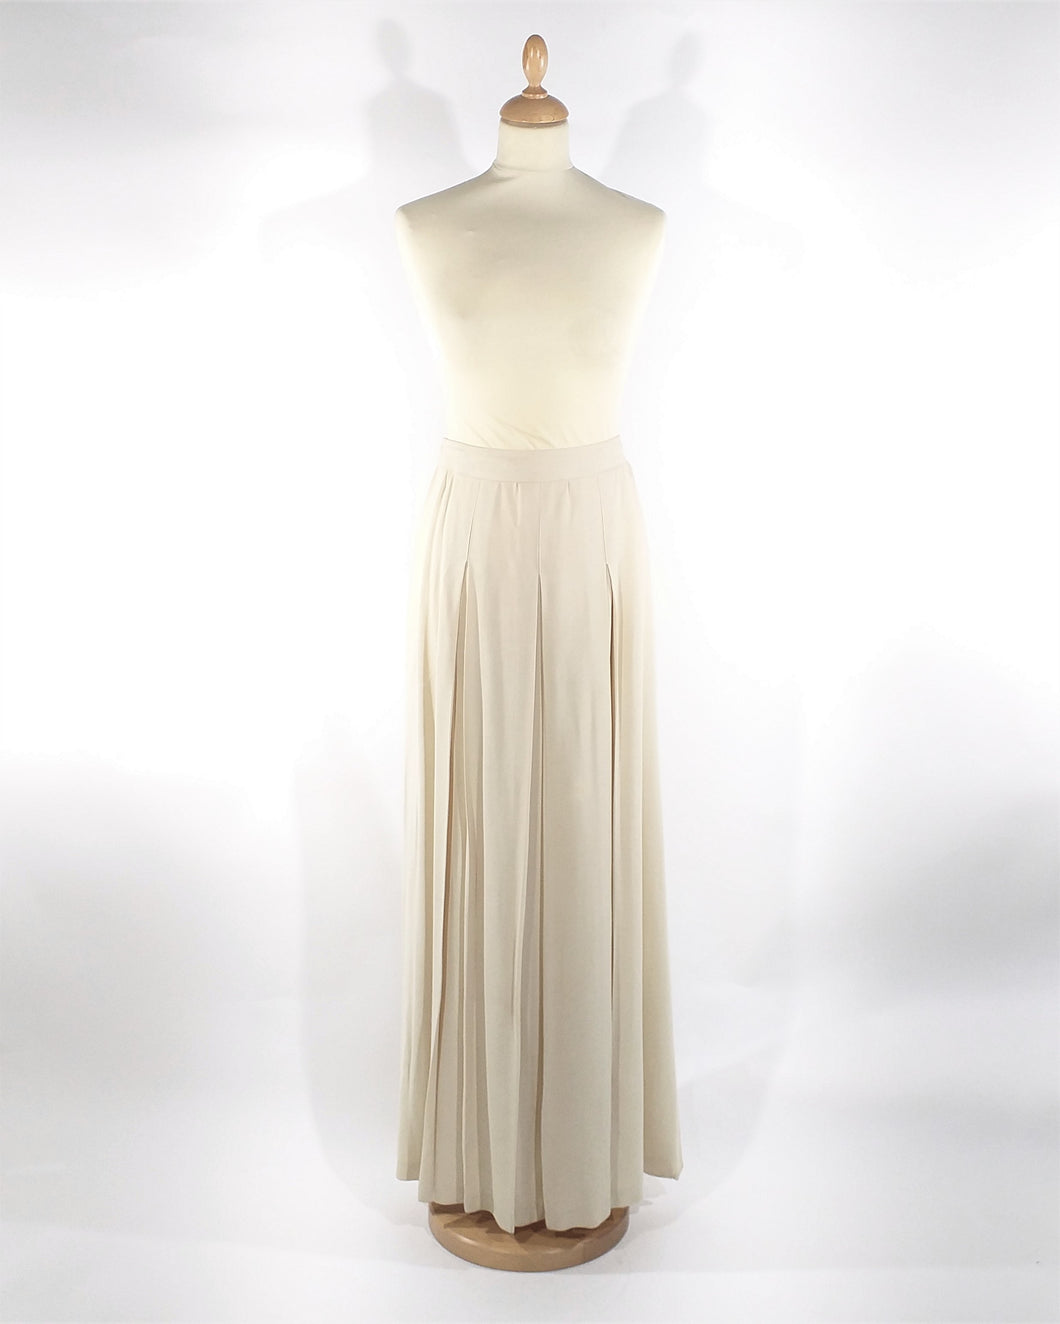 longue jupe en plies '1970 long ivory skirt with folds